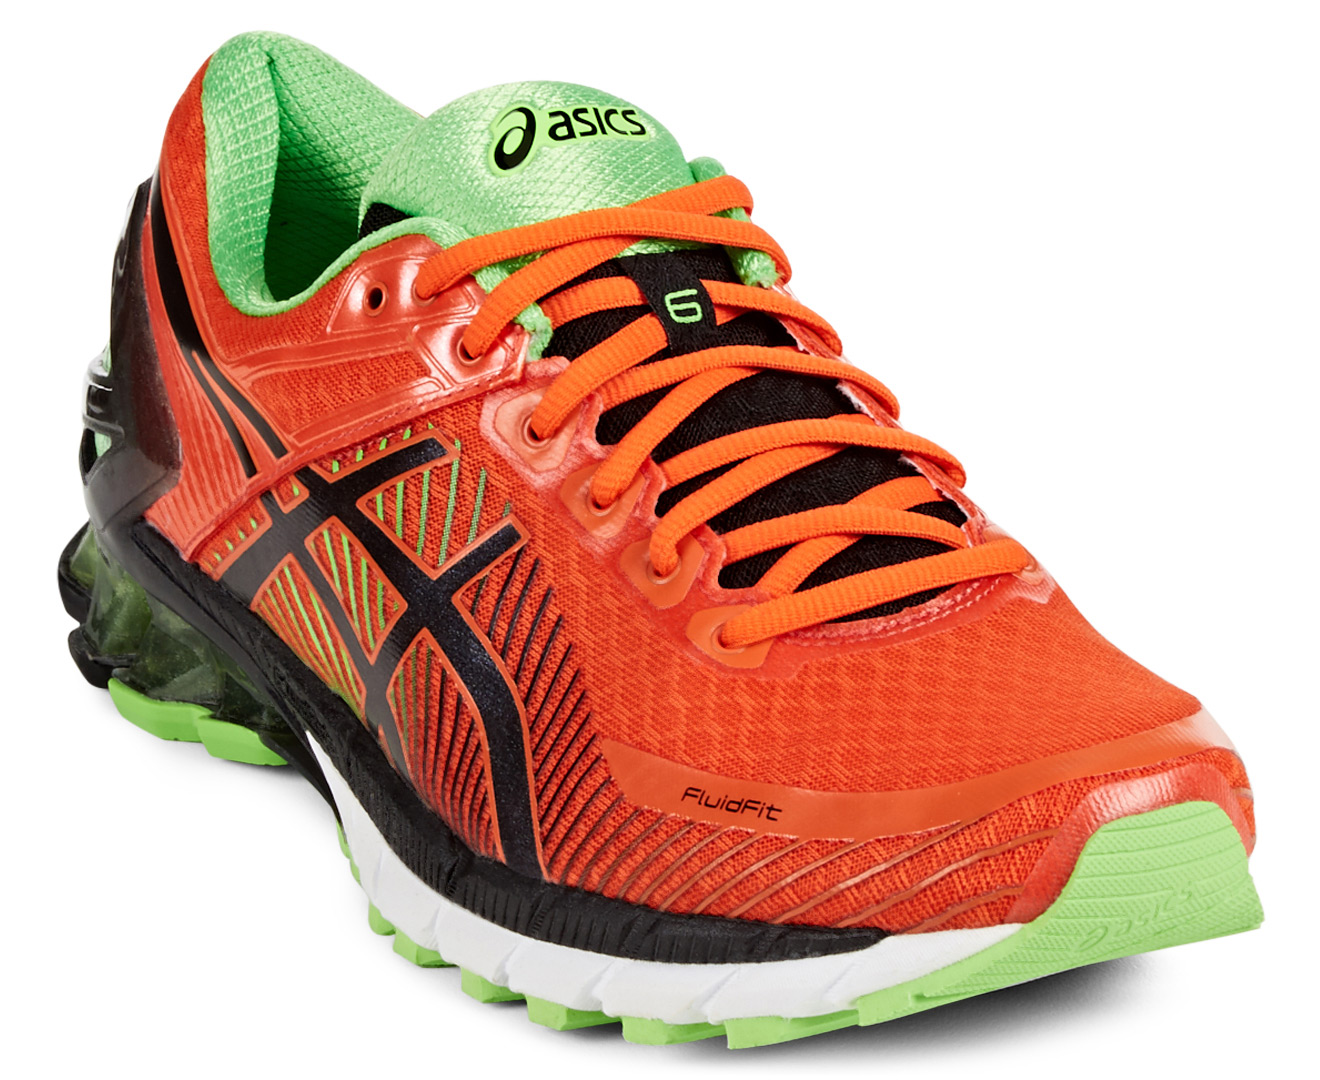 wholesale dealer 43dee 374c8 ... red Catch.com.au ASICS Mens GEL-Kinsei 6 Shoe - FiestaBlackGreen Gecko  ...